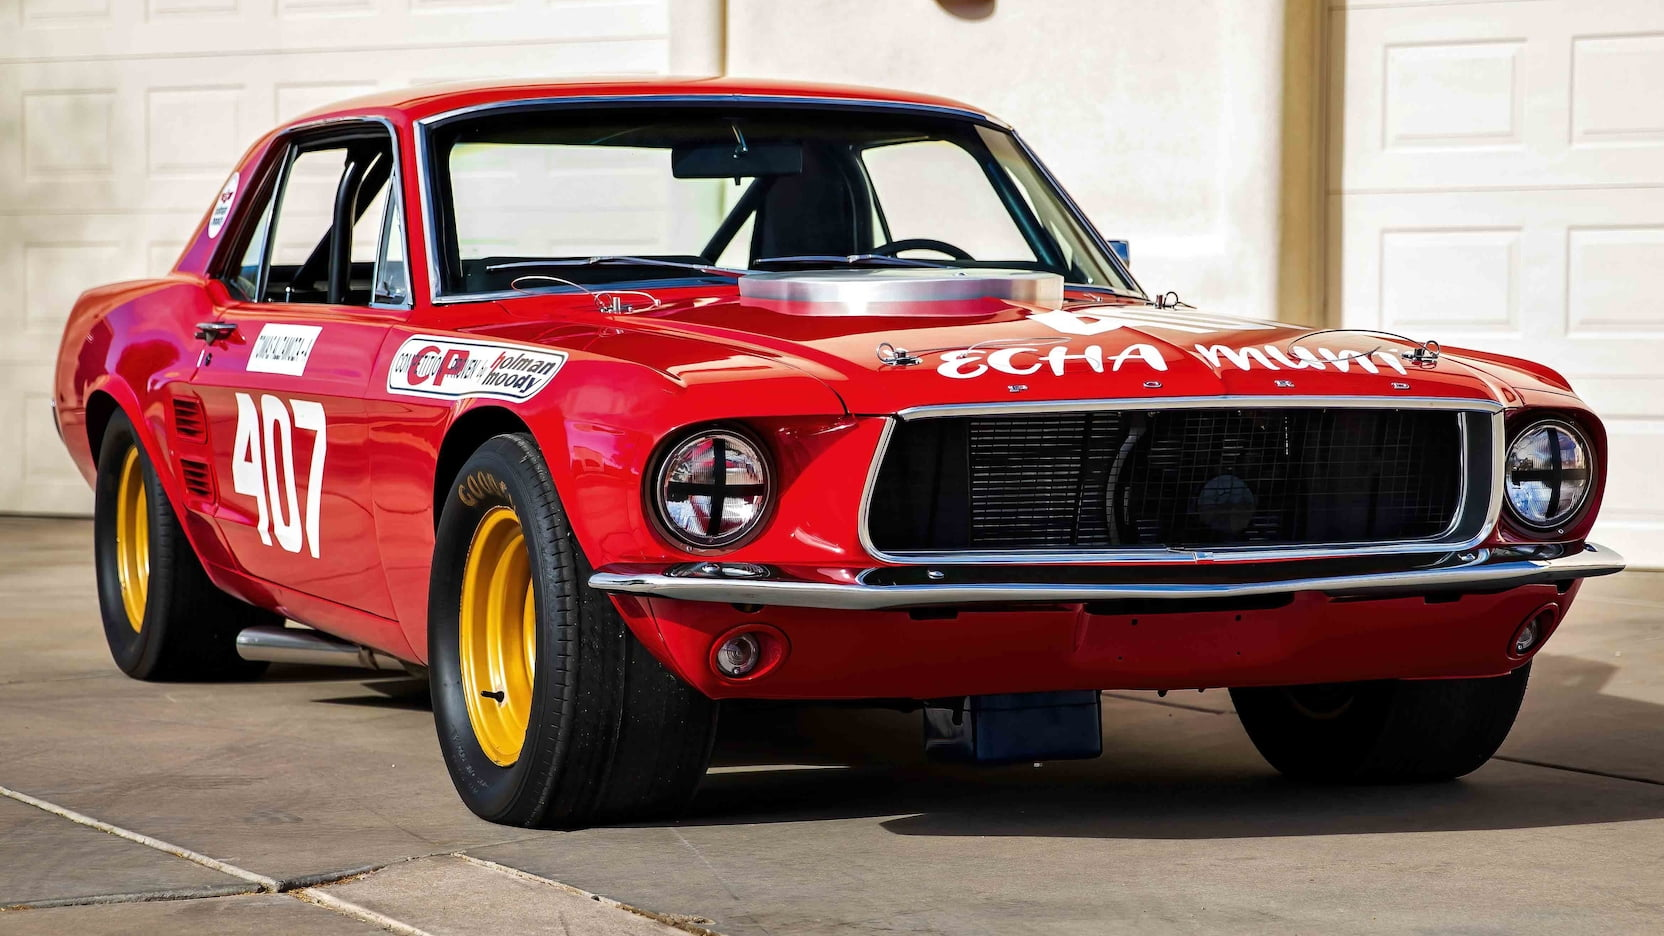 1967 Ford Mustang Holman-Moody Racer front three-quarter